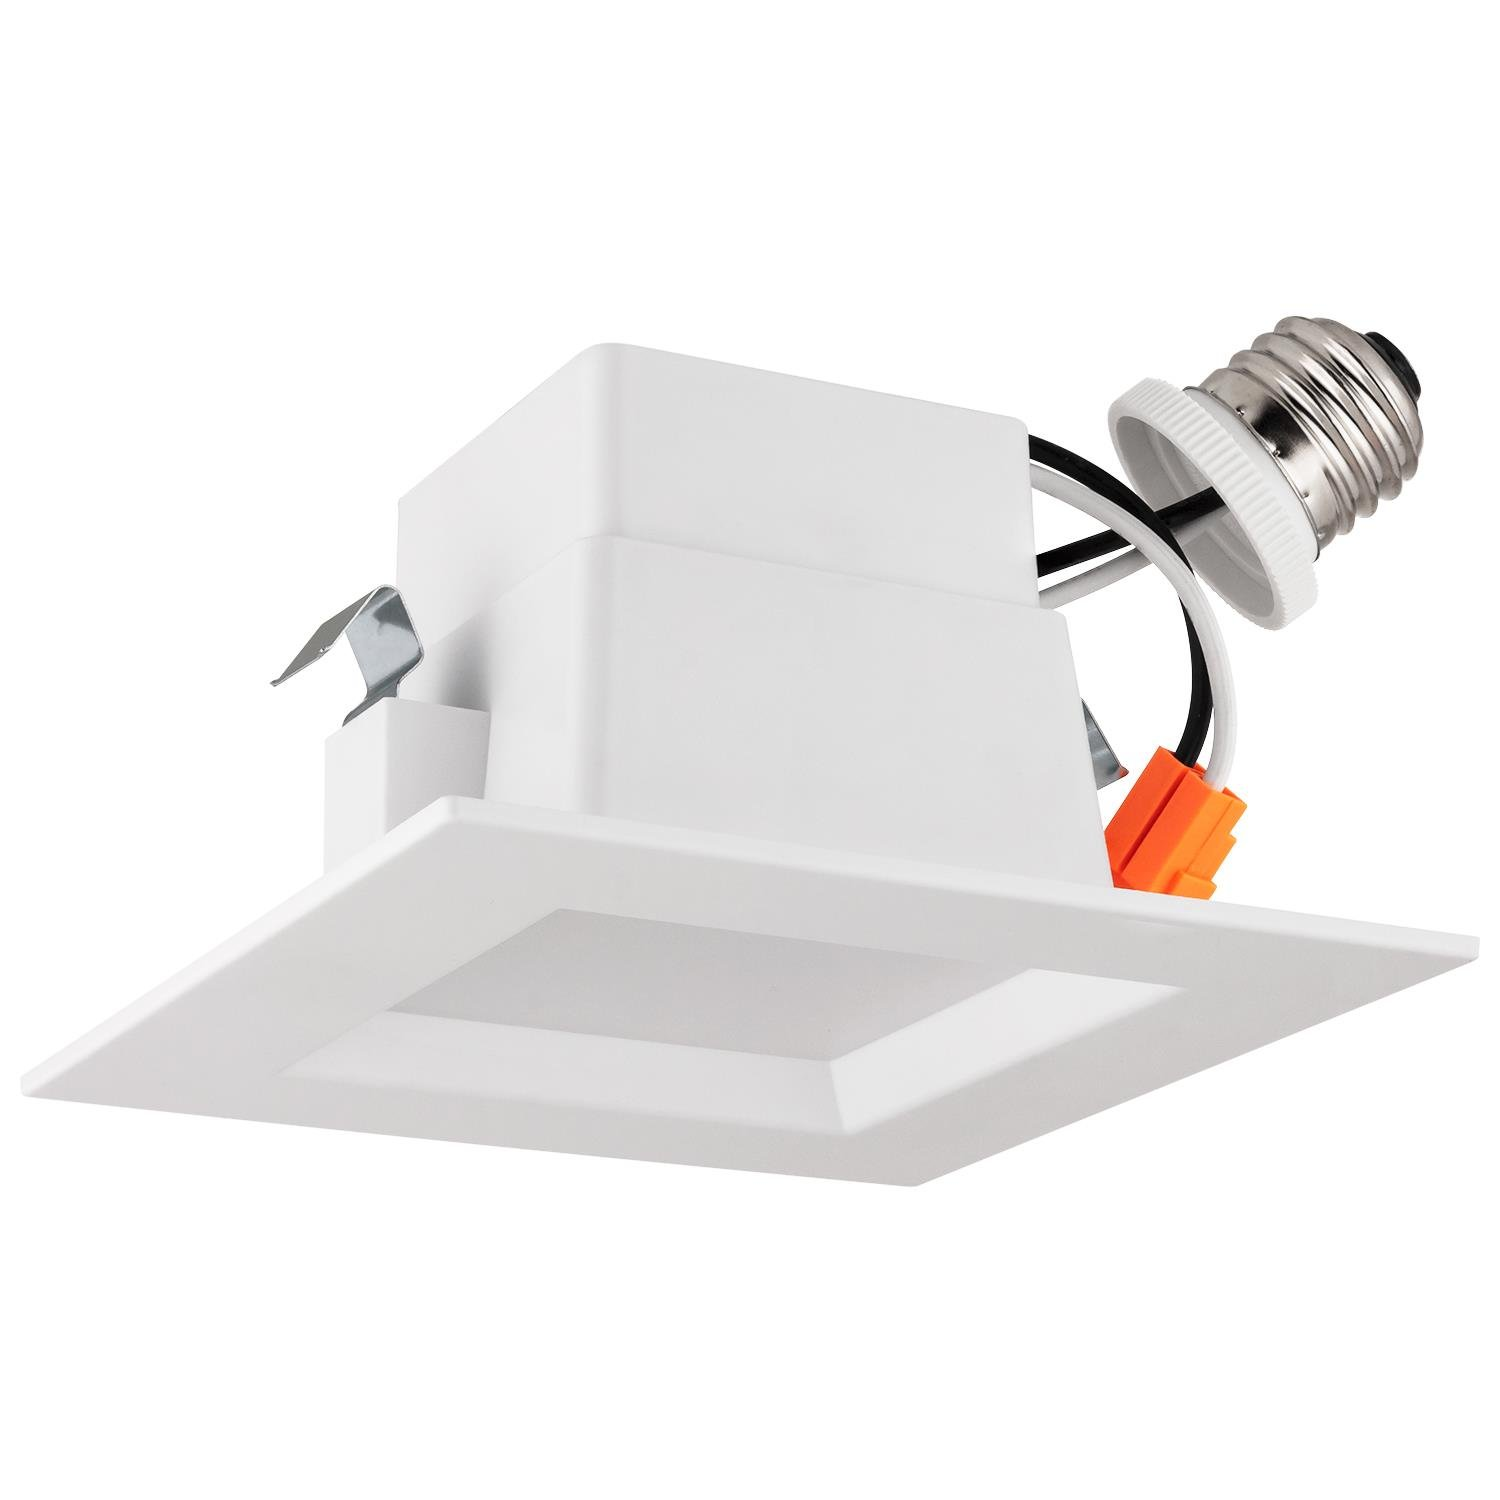 "LB13136 4"" LED Downlight Square, Dimmable, 10W (75W) Retrofit LED Recessed Lighting Fixture, 4000K Cool White Glow, 700 Lumens, LED Recessed Ceiling Light, Waterproof, Energy star & UL (4-PACK)"